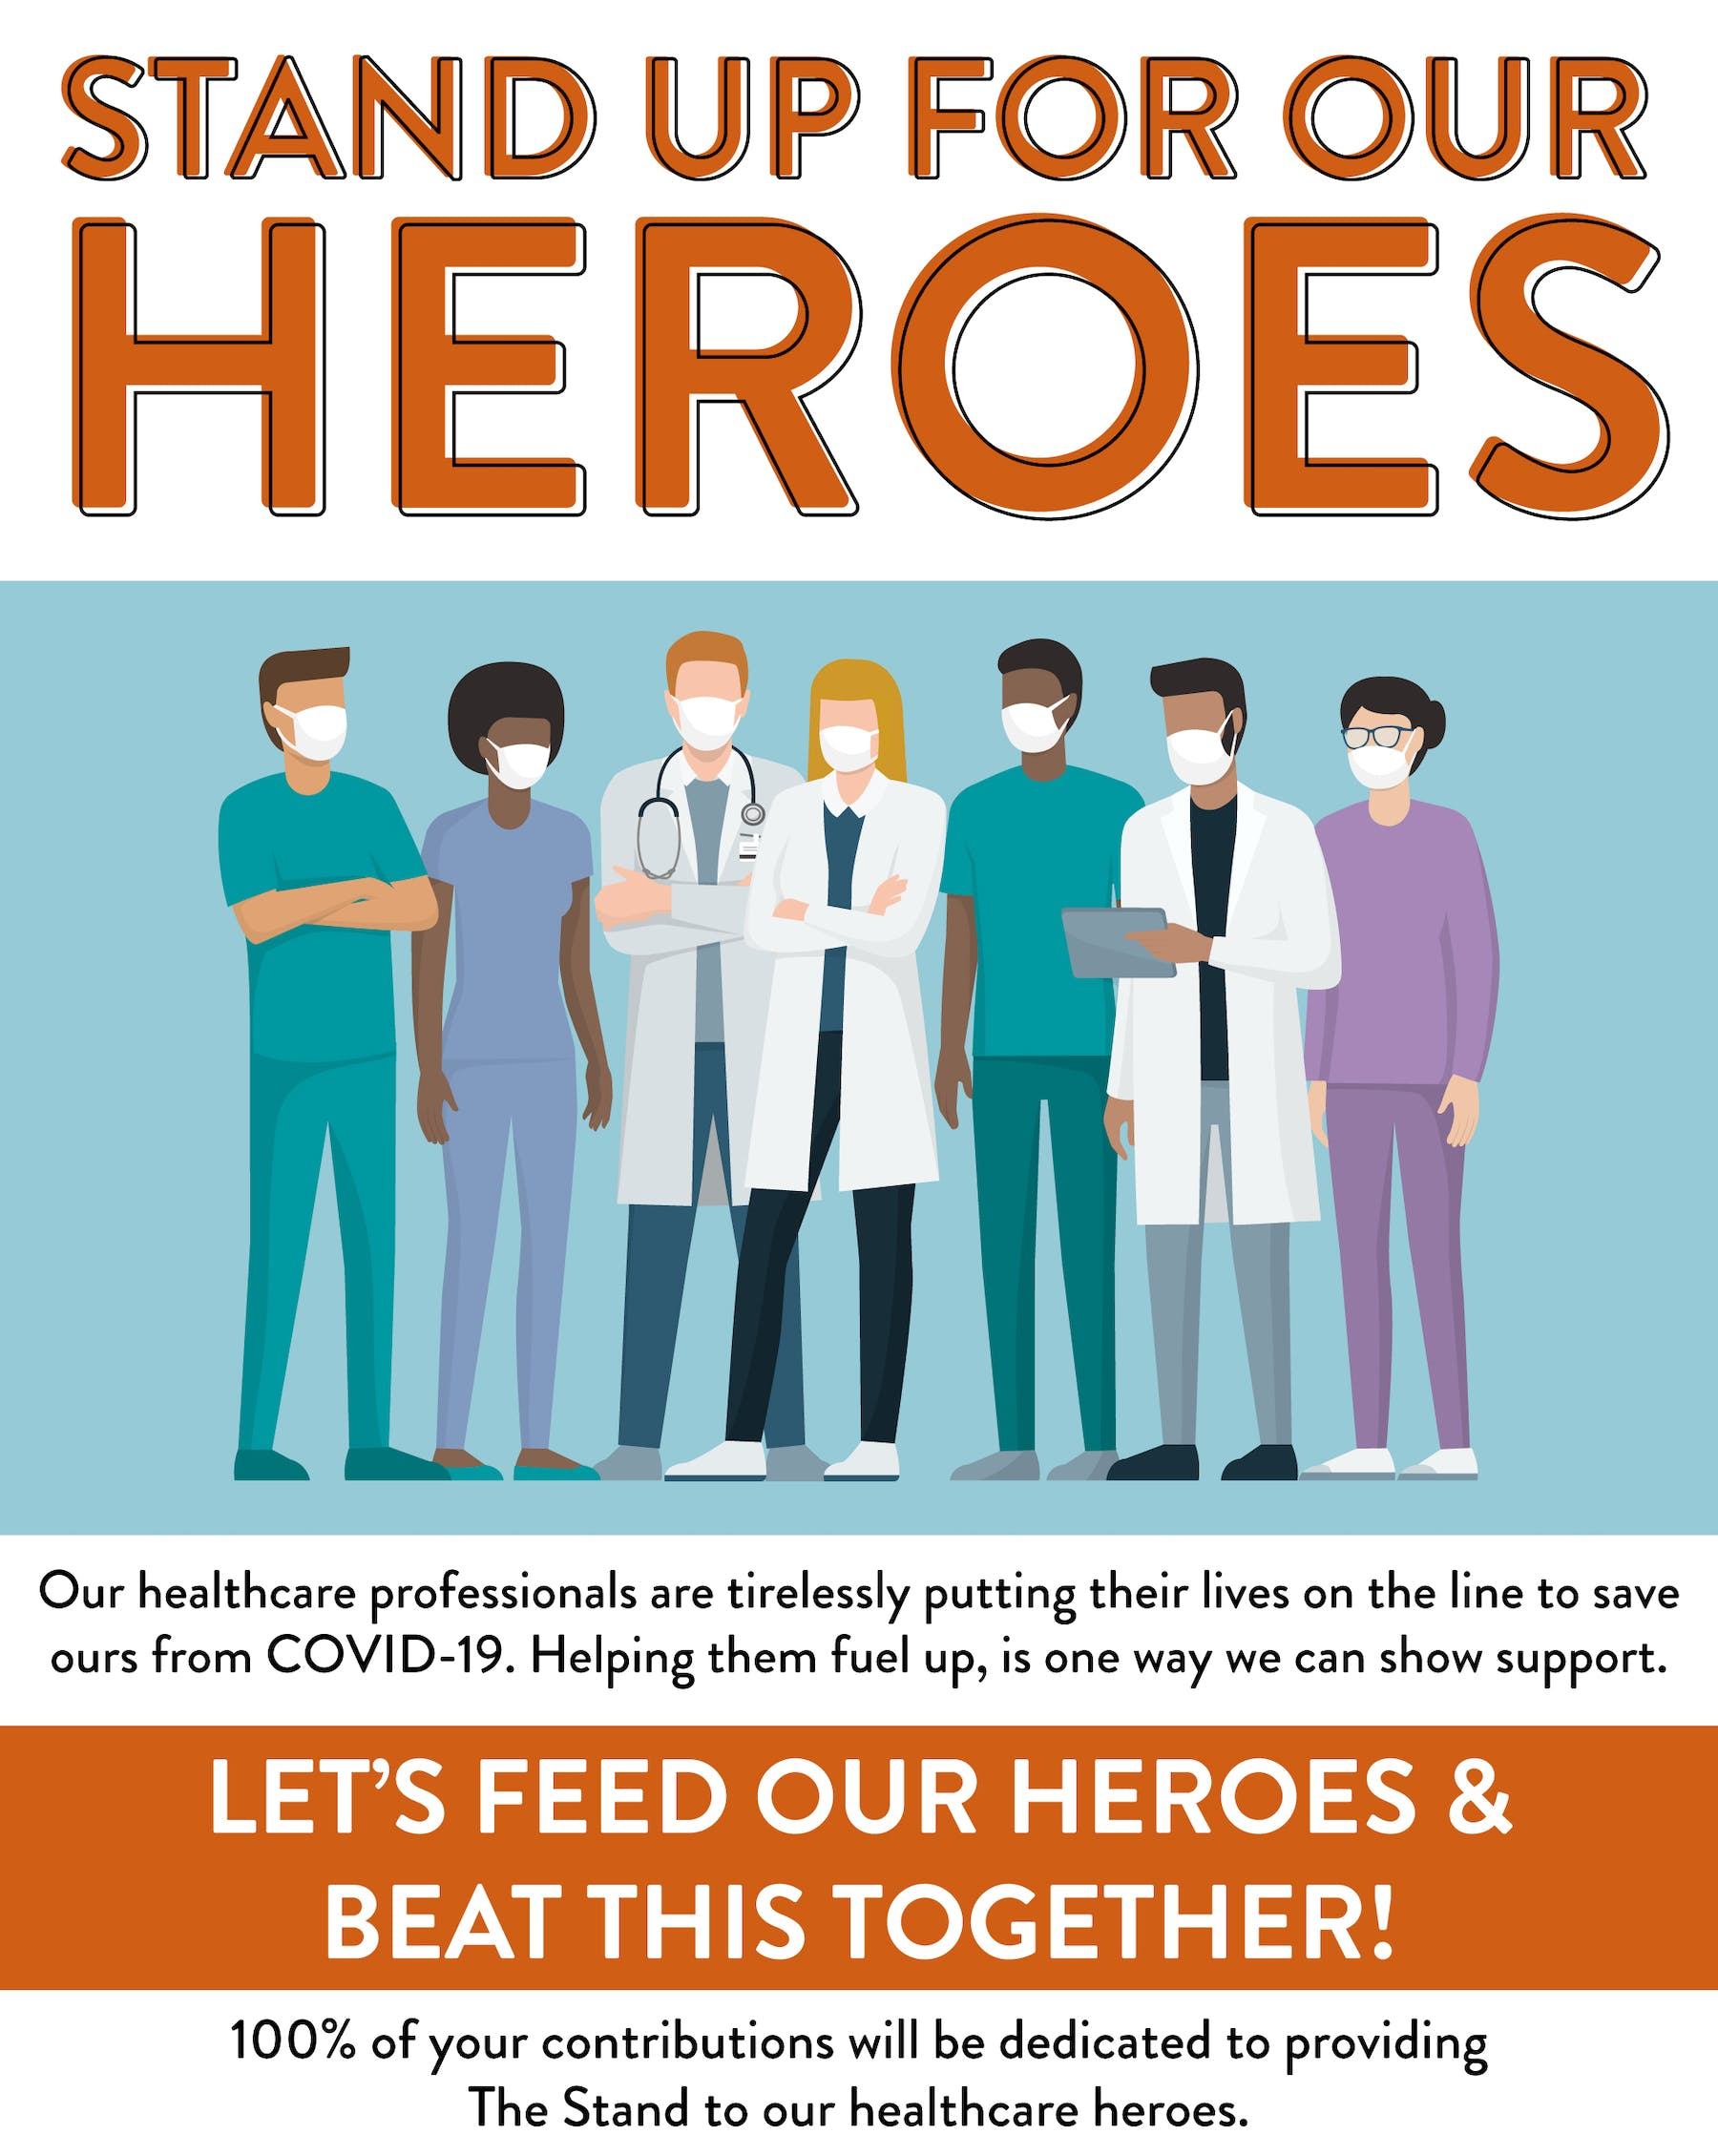 animation of nurses and doctors. feed our healthcare heroes